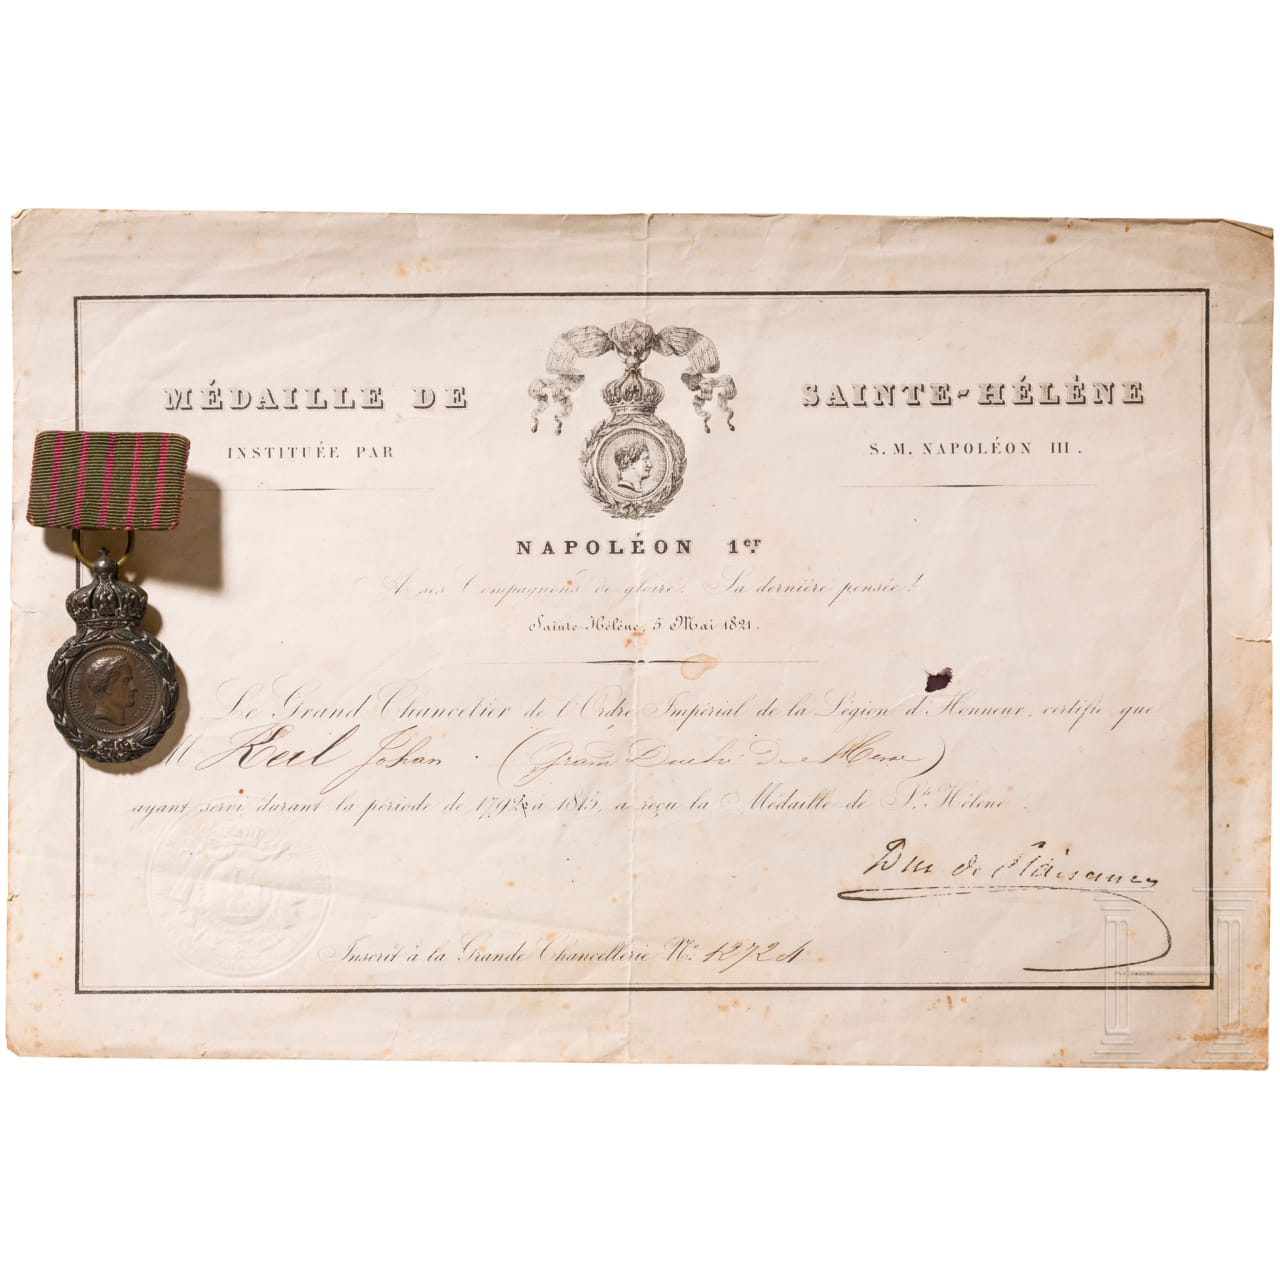 St. Helena medal with bestowal document